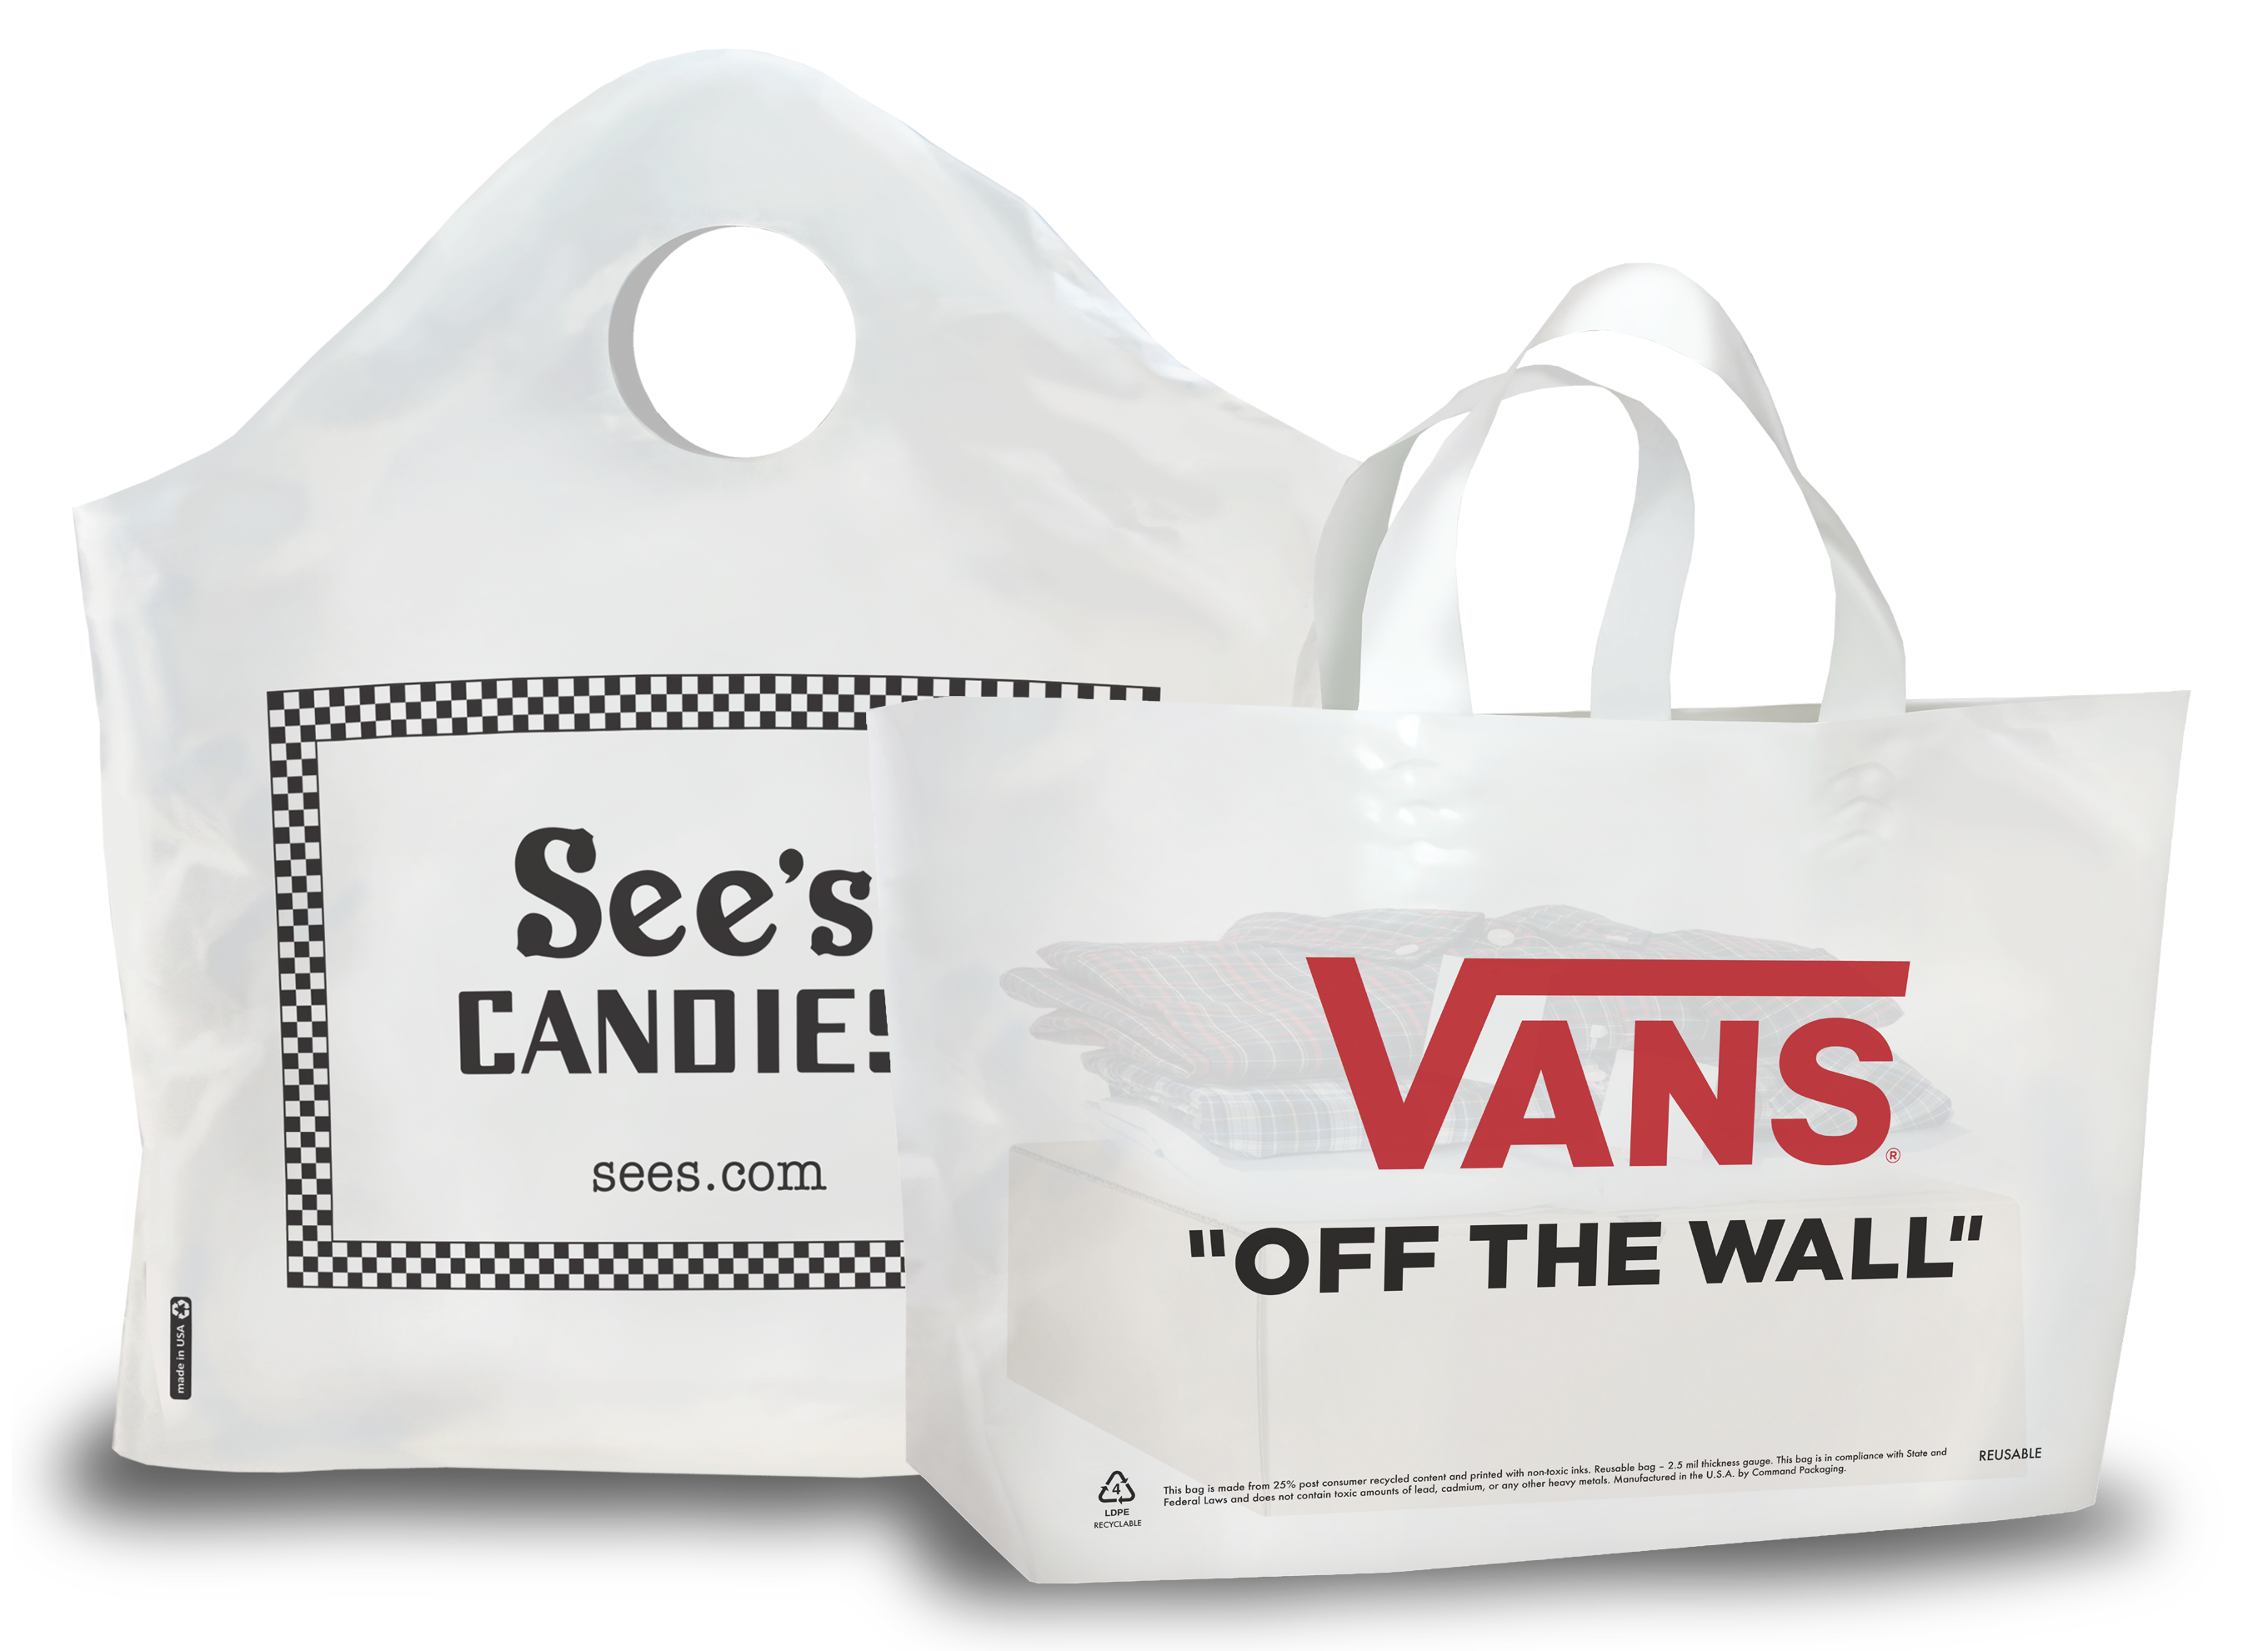 See's_Vans_NO Background January 18.png